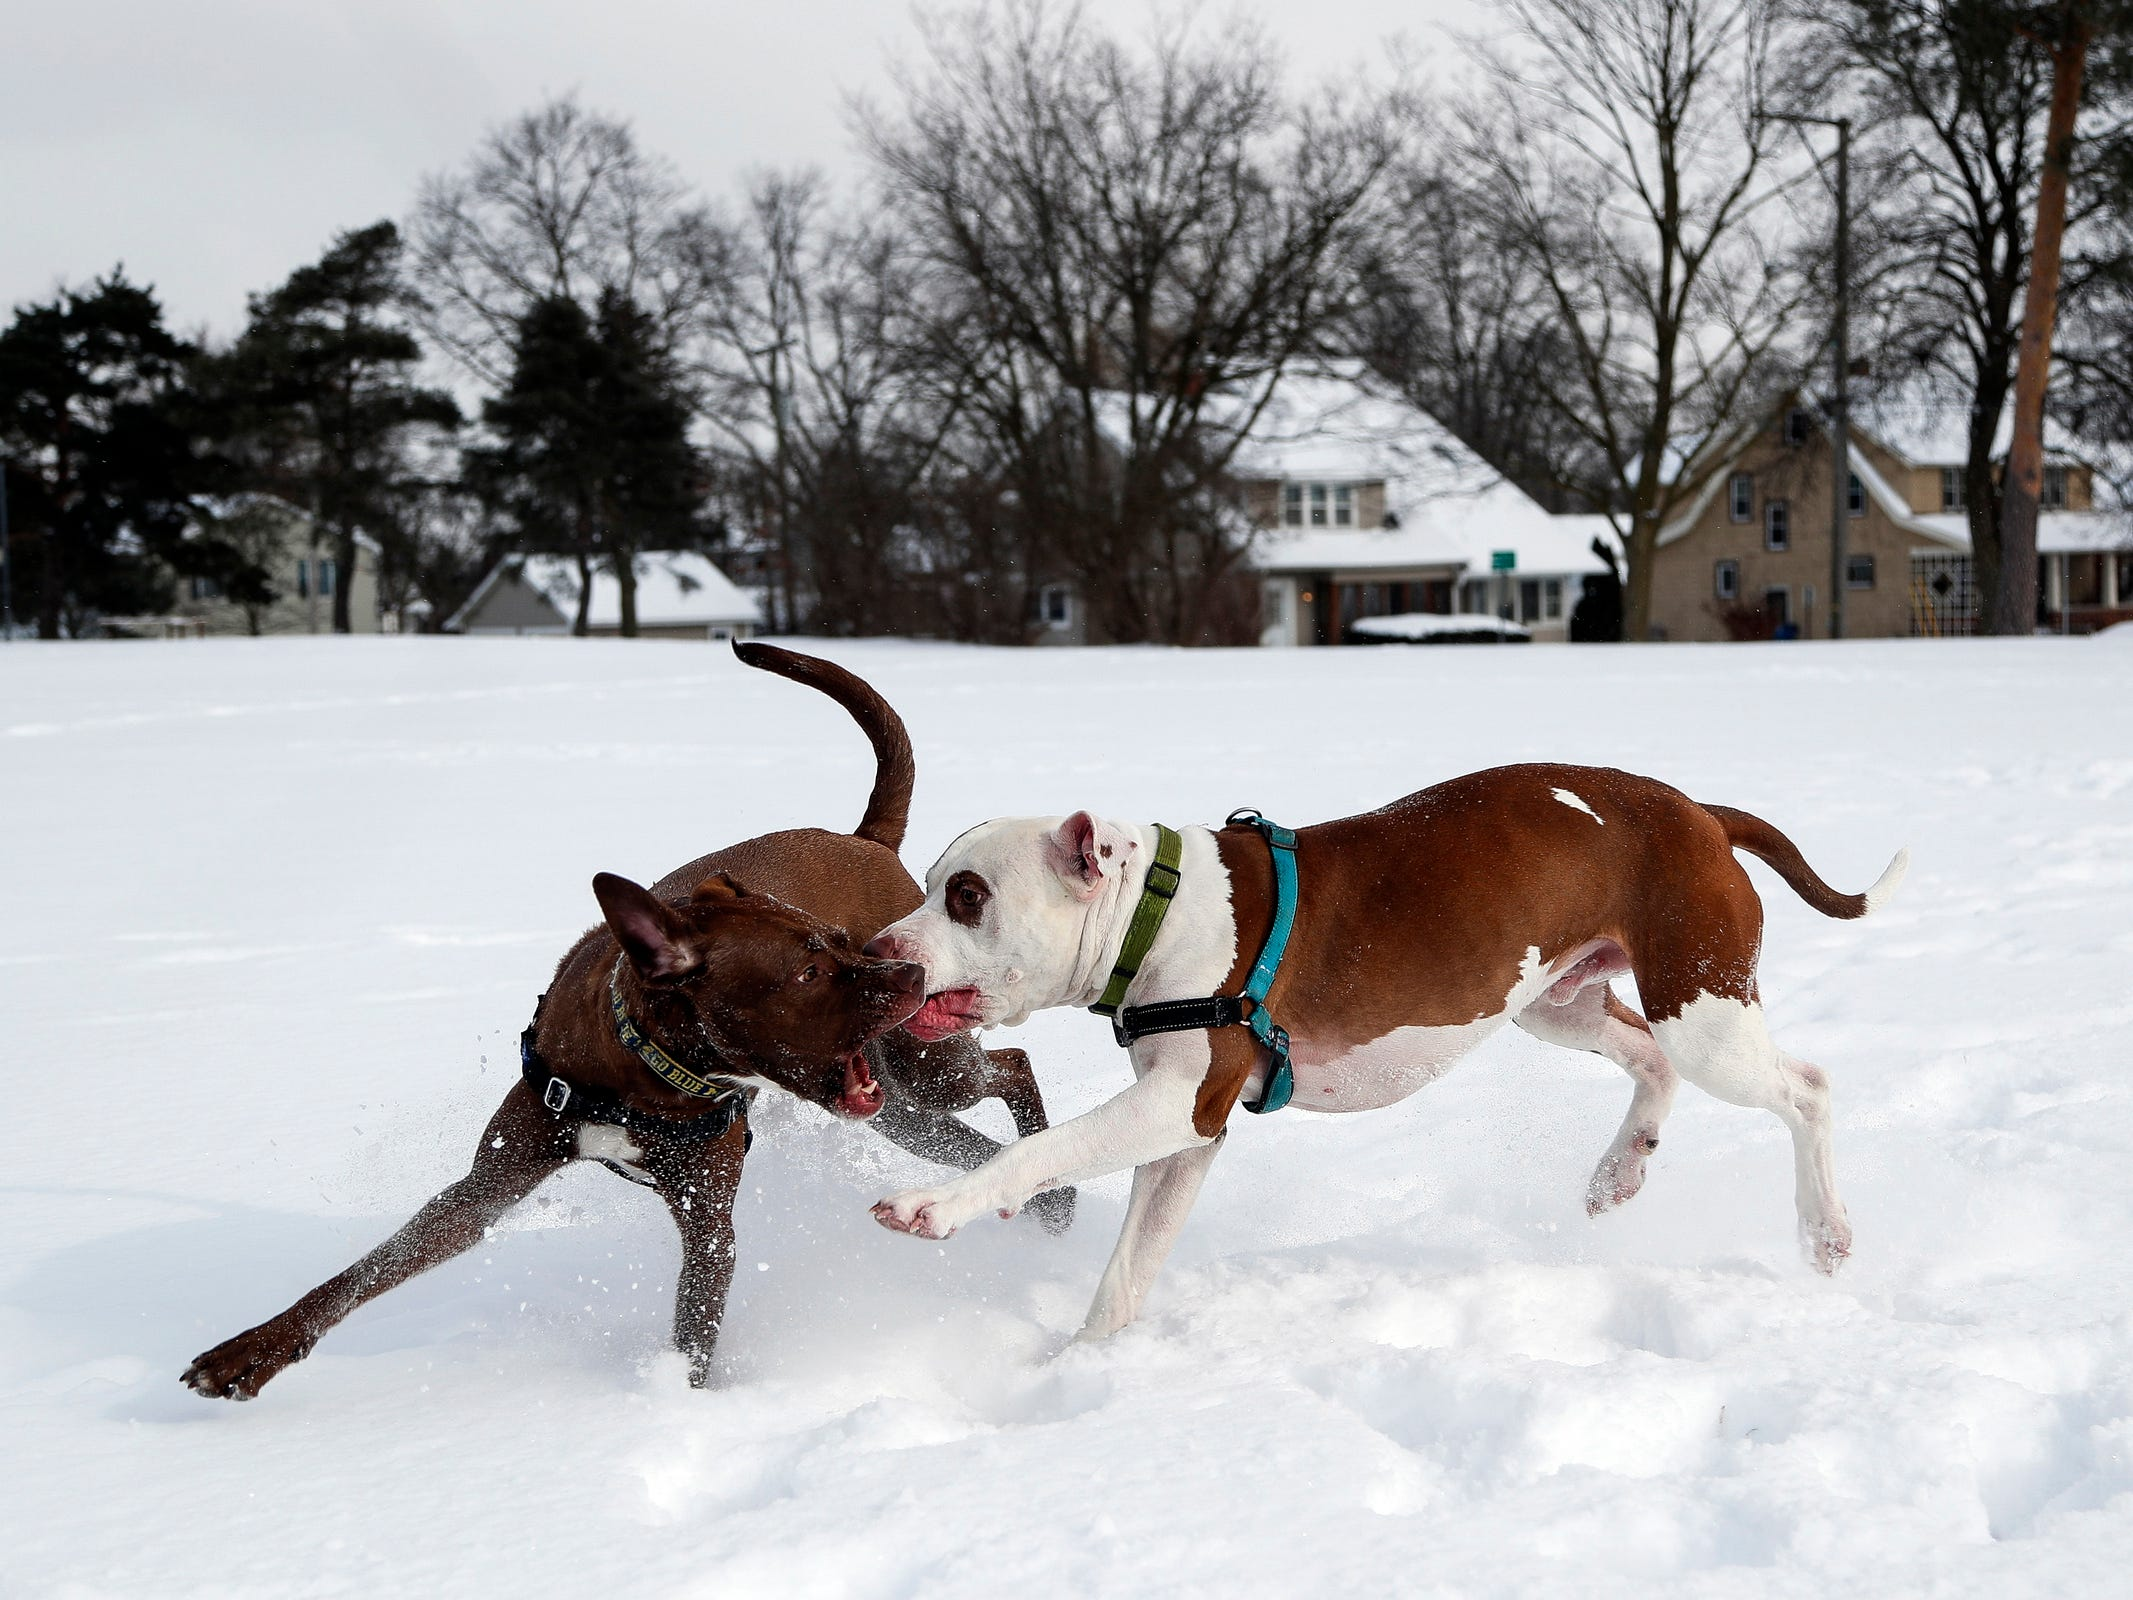 Woodson, left, and Tucker play at the Allmendinger Park in Ann Arbor, Mich. on Jan. 29, 2019.